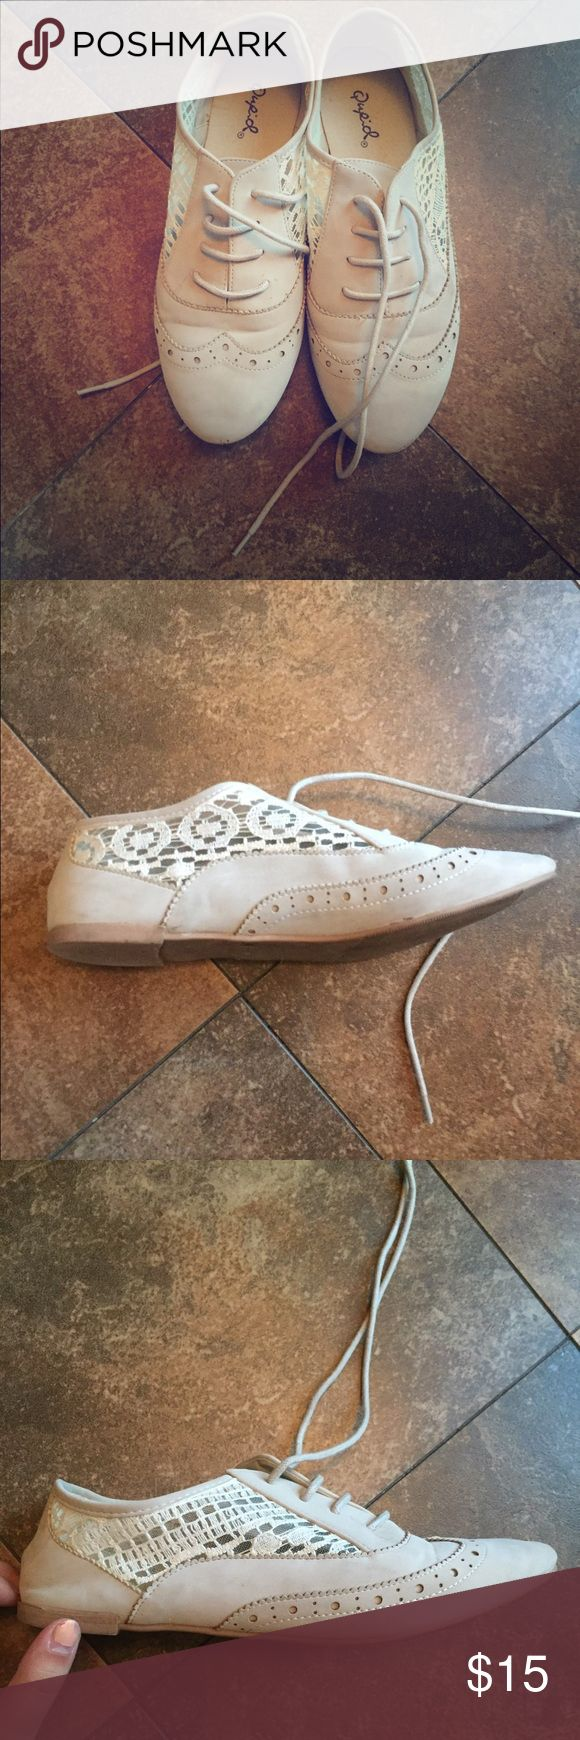 Cream suede/lace oxfords Soft cream/tan suede lace-up oxfords with white lace detailing on the sides. No flaws except for a few scuff marks! Qupid Shoes